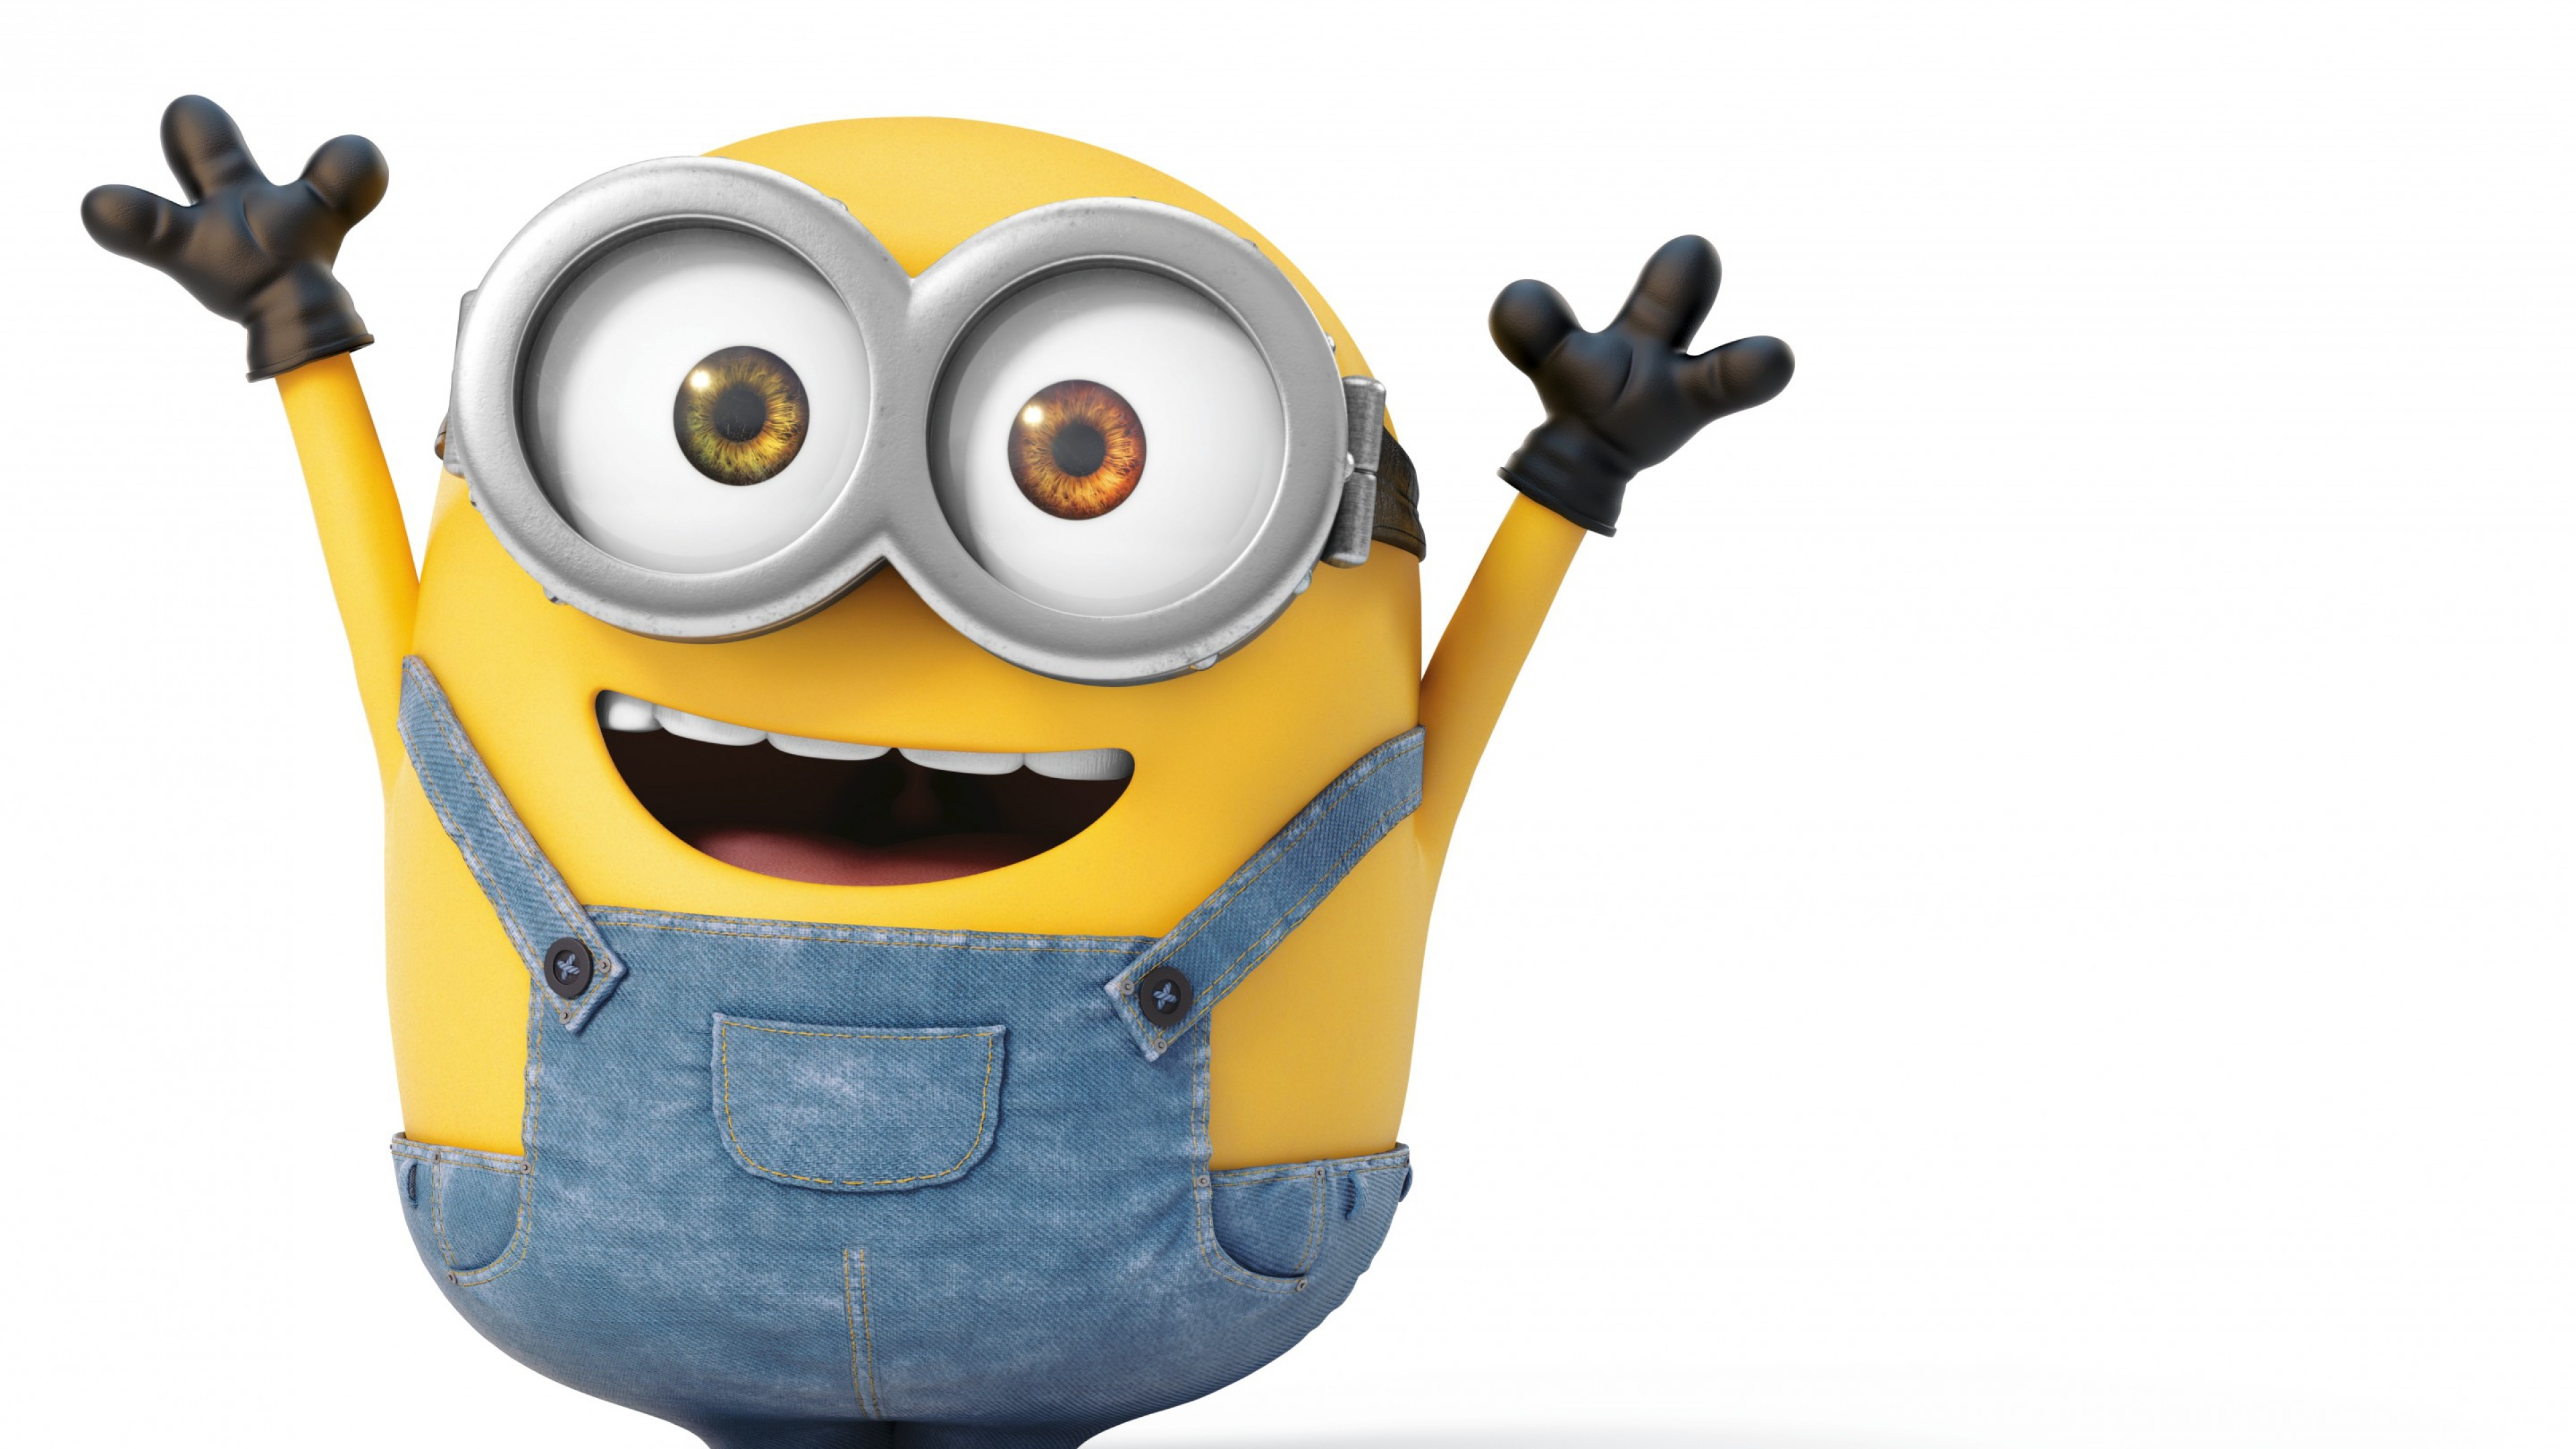 3840x2160 3840x2160 Wallpaper Minions, Bob, Joy